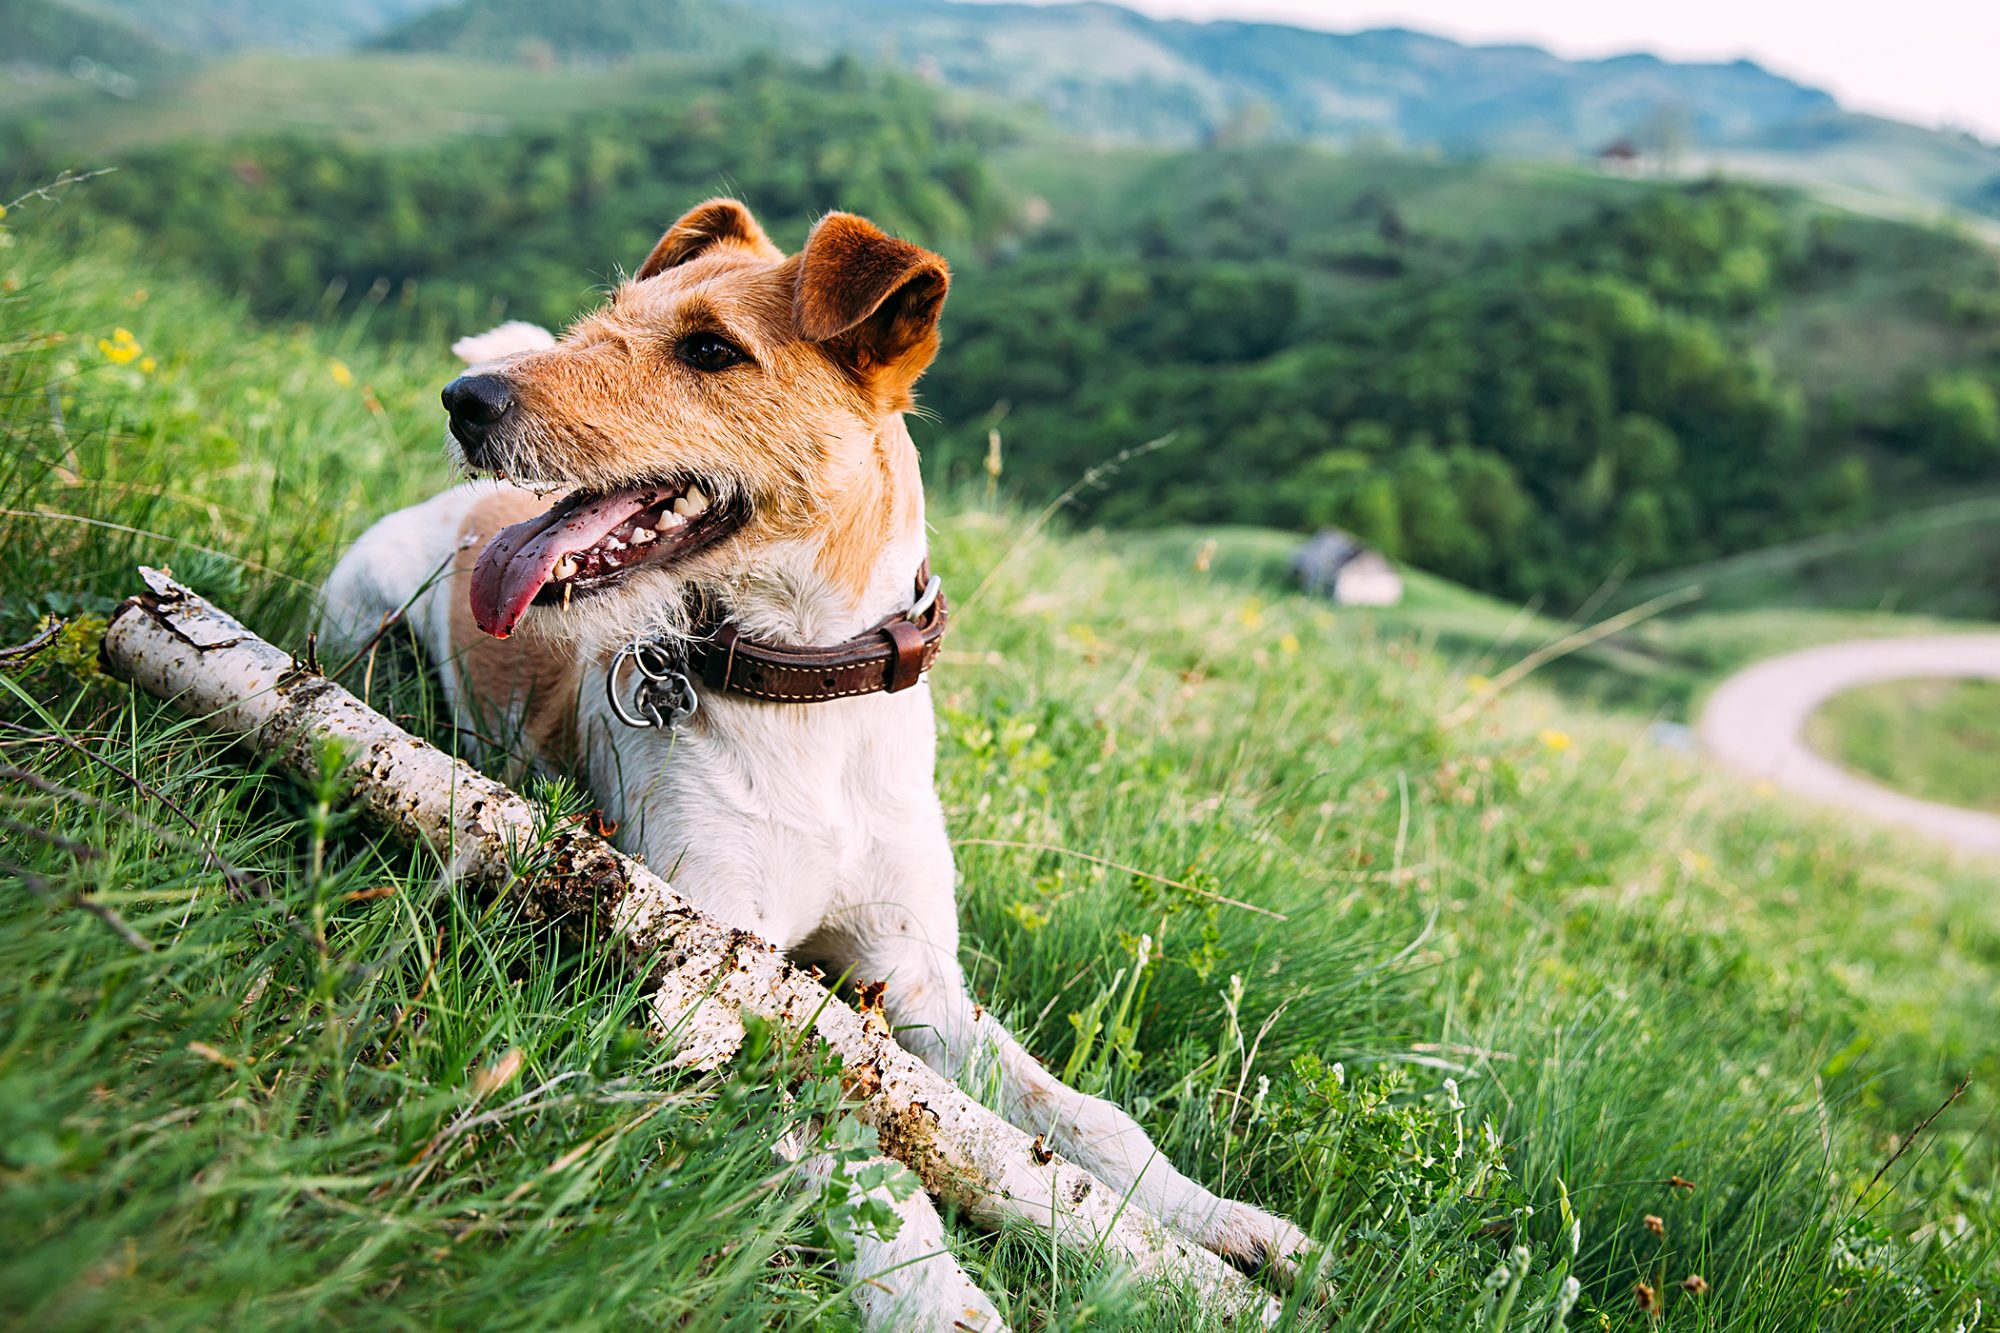 wire fox terrier lying with a big stick outside on a grassy hill